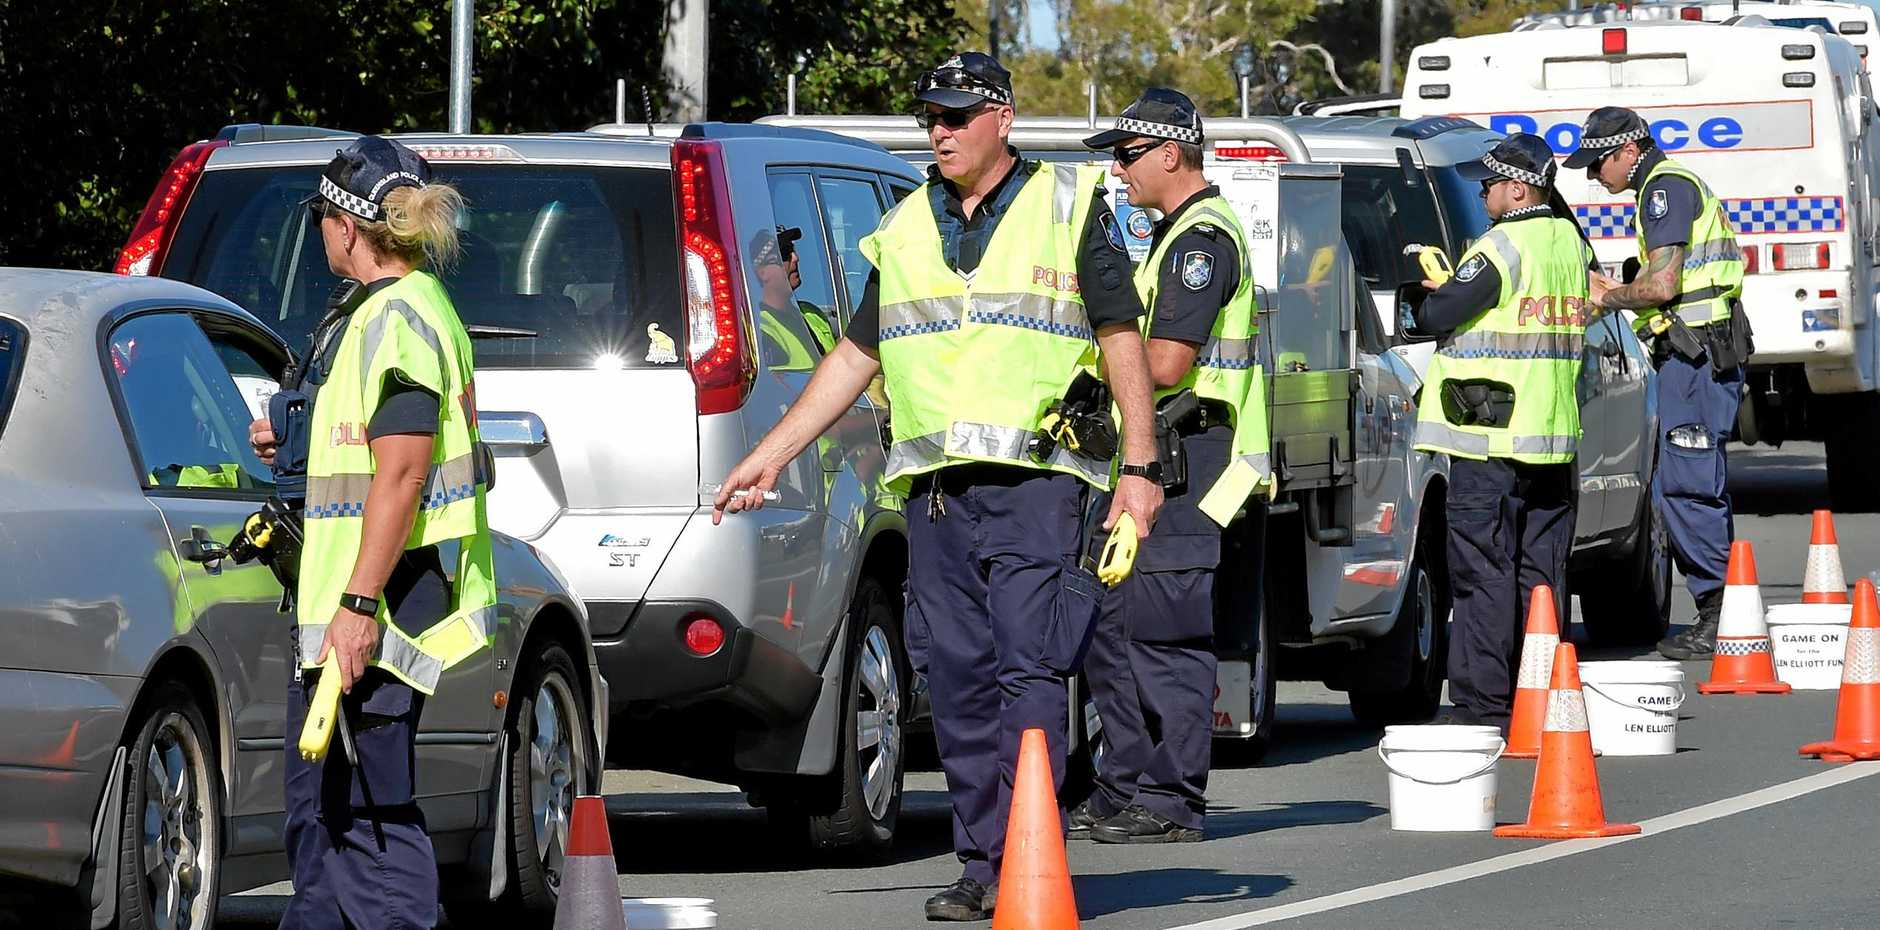 POLICE conducting roadside breath tests nearby watched as a drink driver got out of her car and swapped seats with her passenger, a court was told.